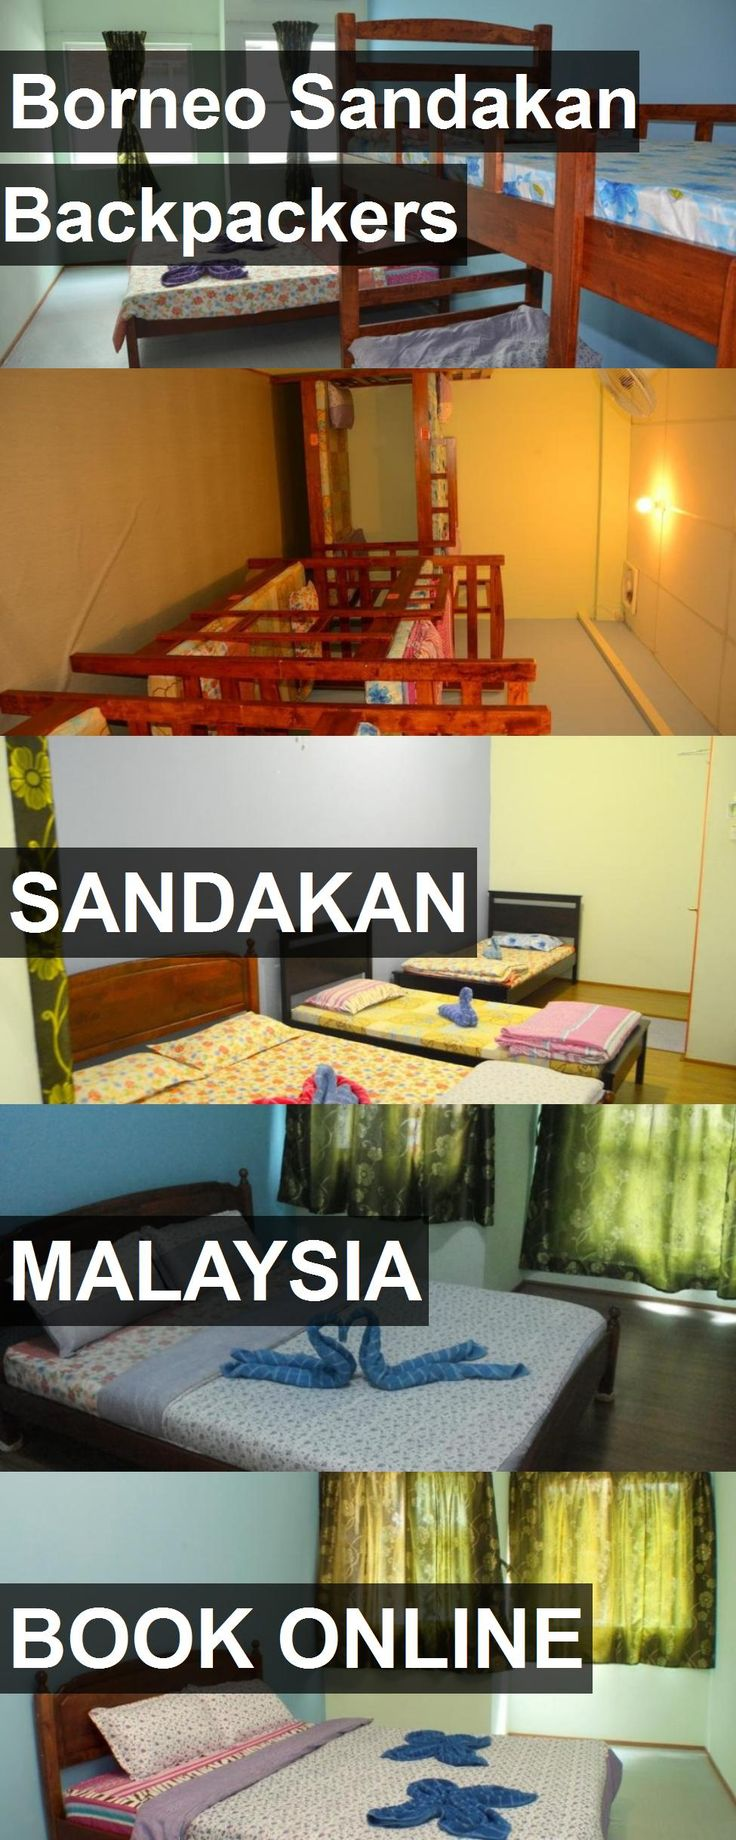 Hotel Borneo Sandakan Backpackers in Sandakan, Malaysia. For more information, photos, reviews and best prices please follow the link. #Malaysia #Sandakan #hotel #travel #vacation